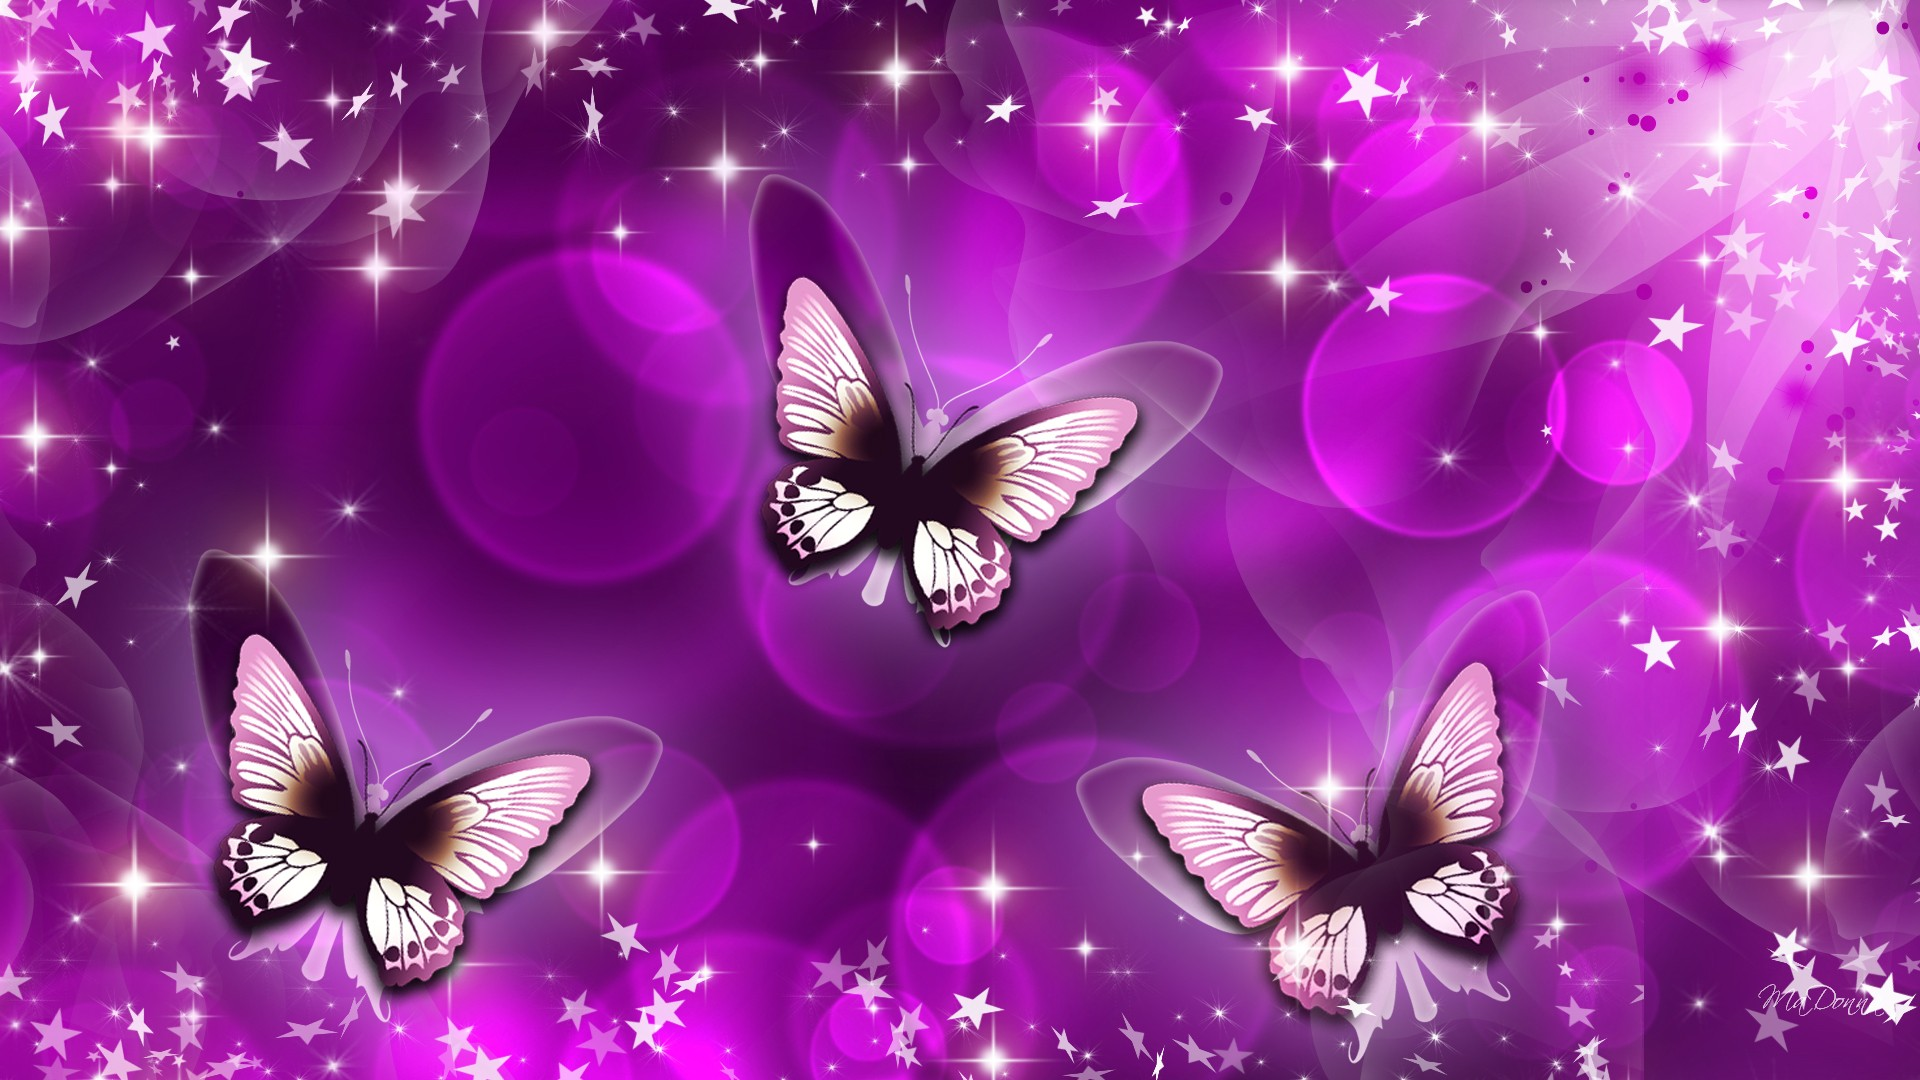 Clipart Free. Monarch Butterfly Clipart: HD Wallpapers Monarch ...